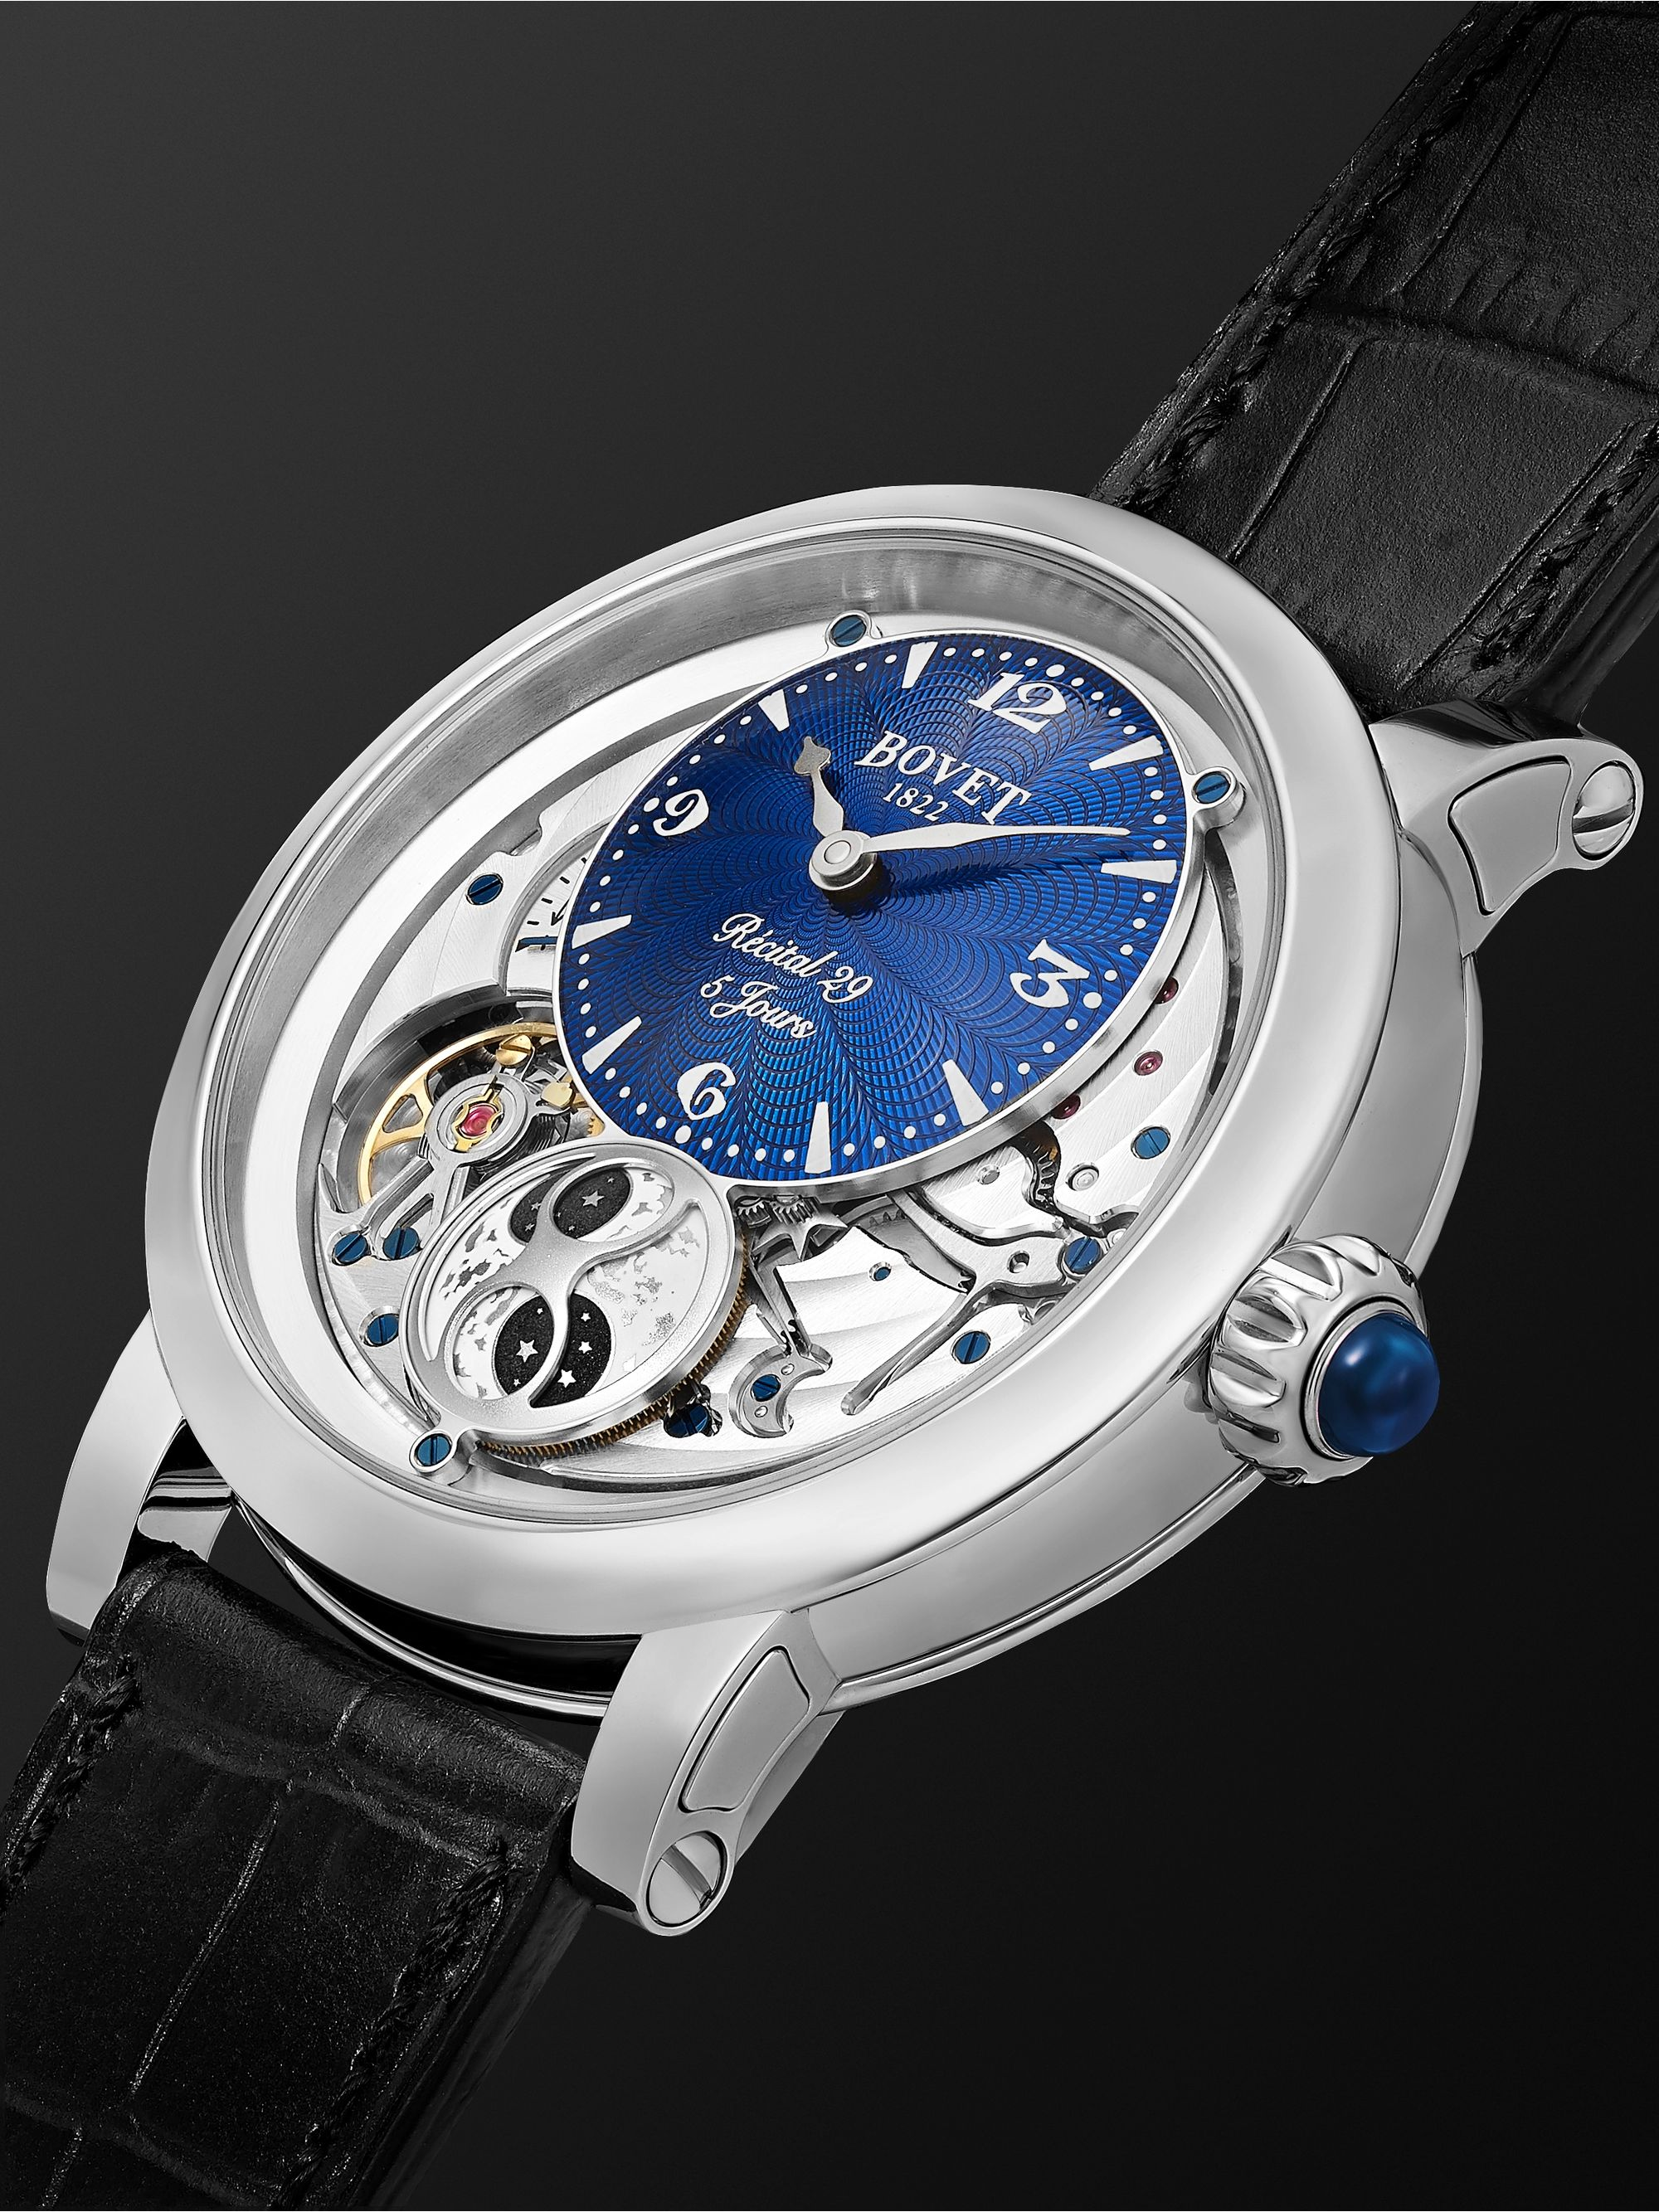 Bovet Récital 29 Moon-Phase 42mm Stainless Steel and Leather Watch, Ref. No. R290002